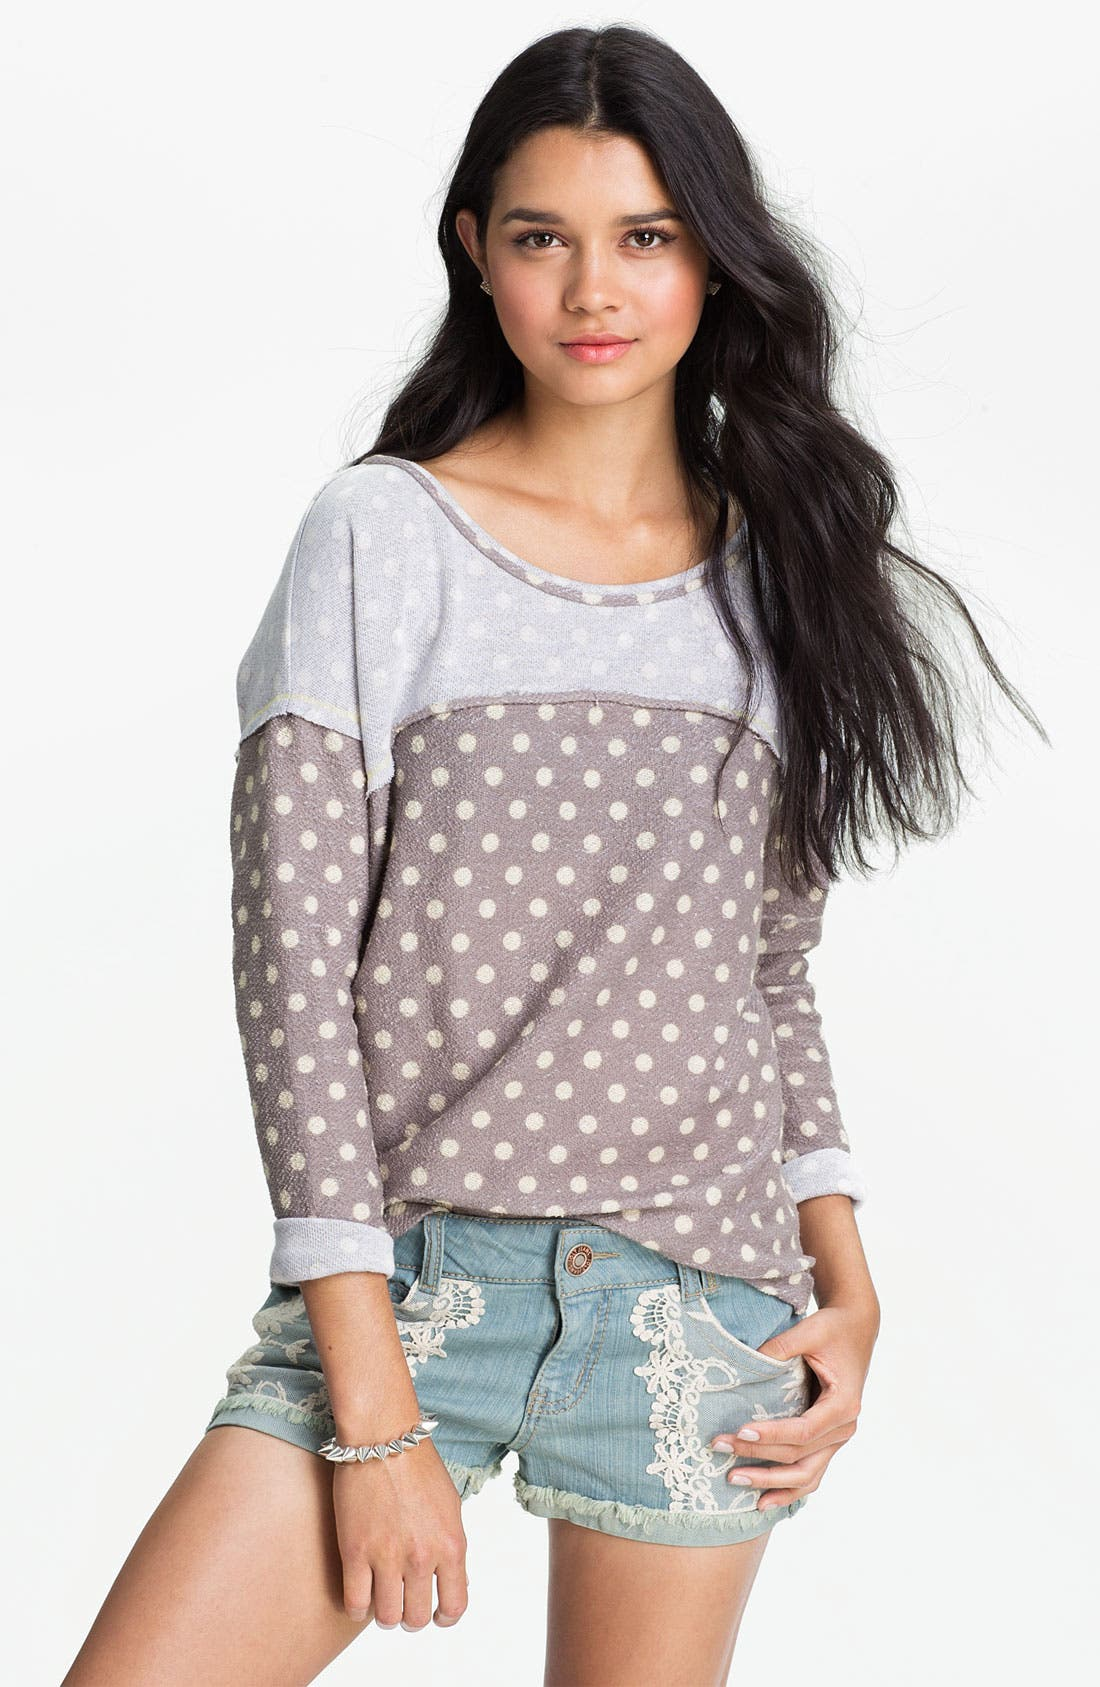 Main Image - Lush Polka Dot Reverse Terry Top (Juniors)